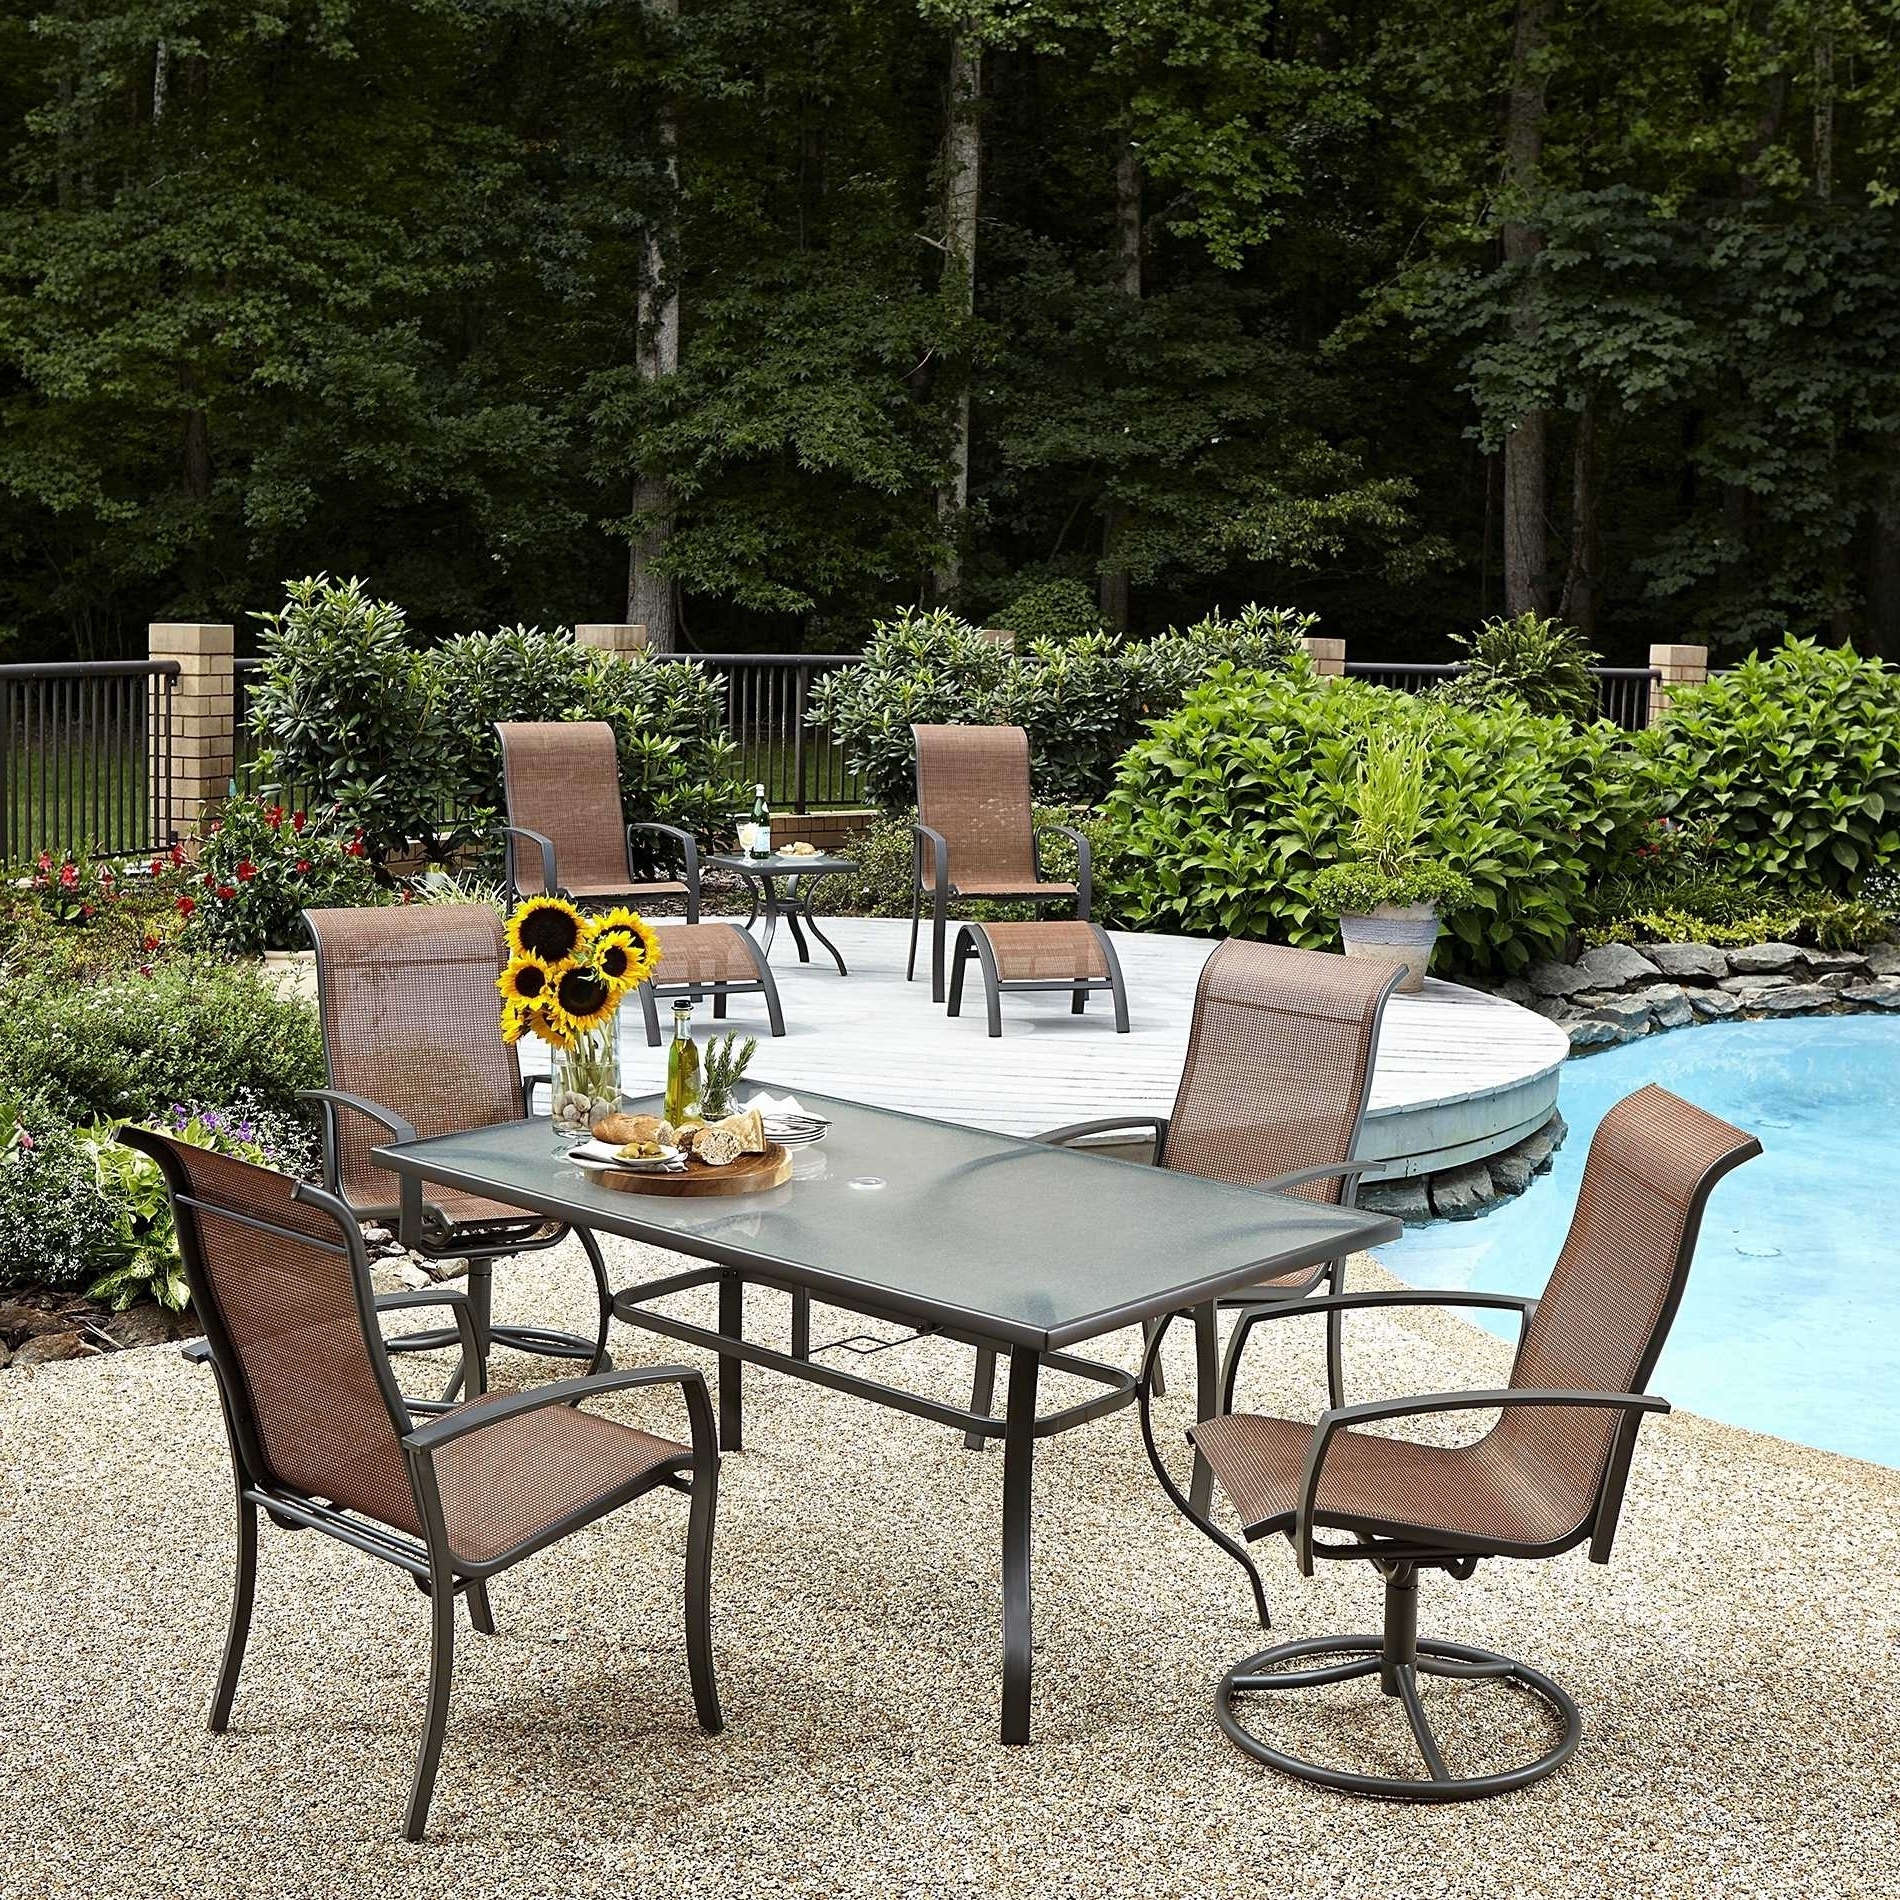 Favorite Patio Conversation Sets Under 200 Regarding Cheap Patio Furniture Sets Inspirations Including Beautiful Under (View 3 of 15)